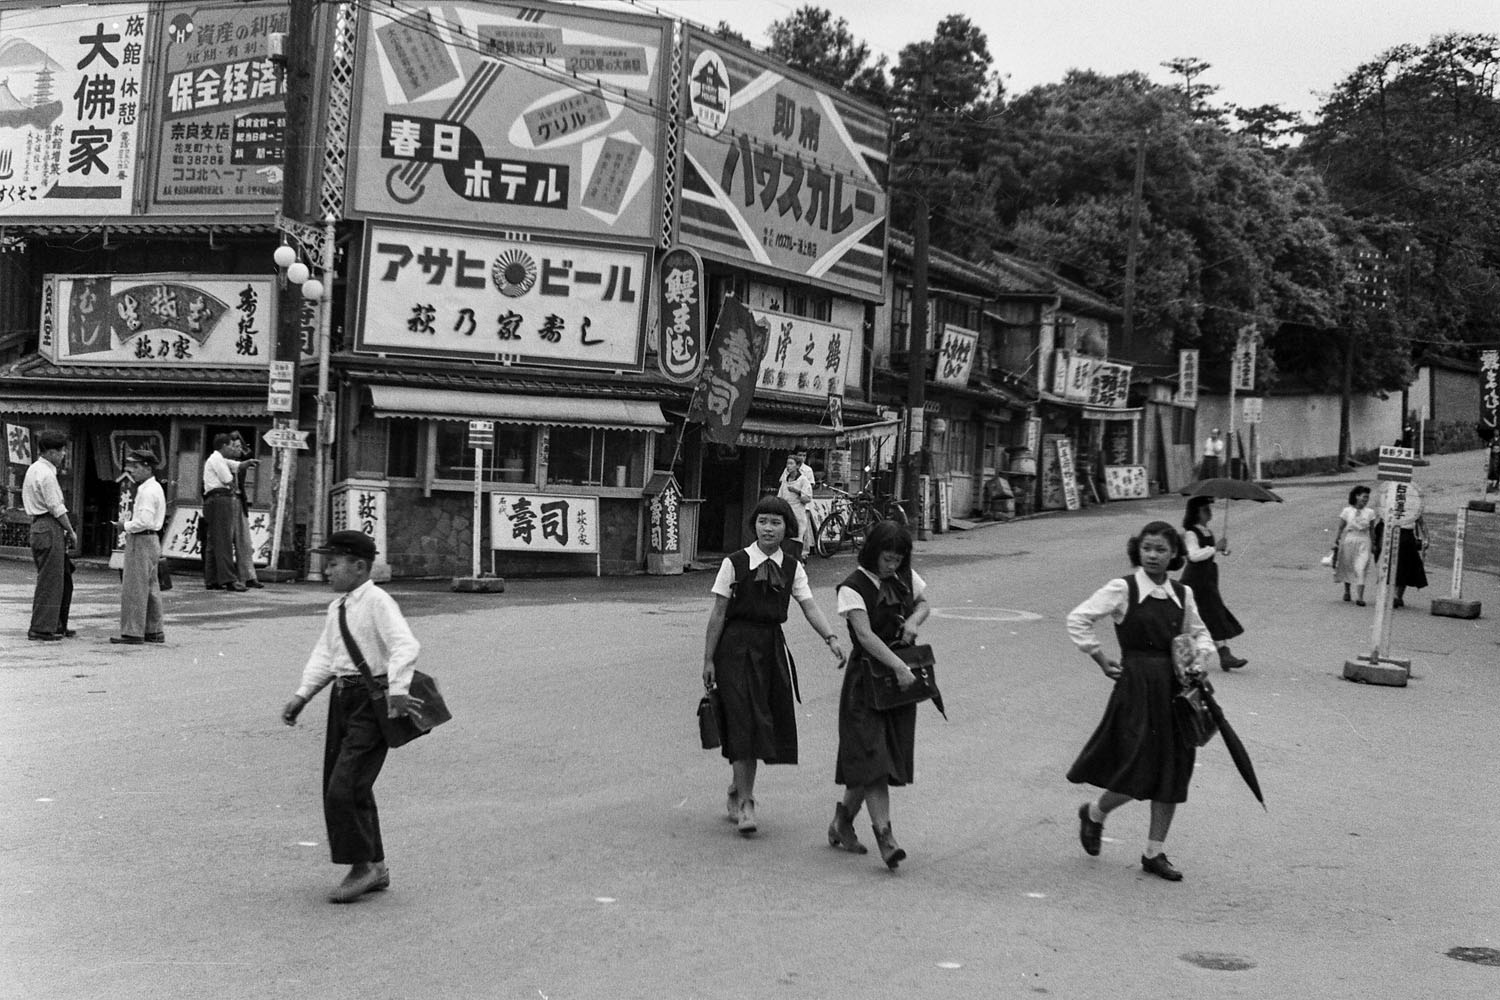 285- School Children (Sendai? / Location?)